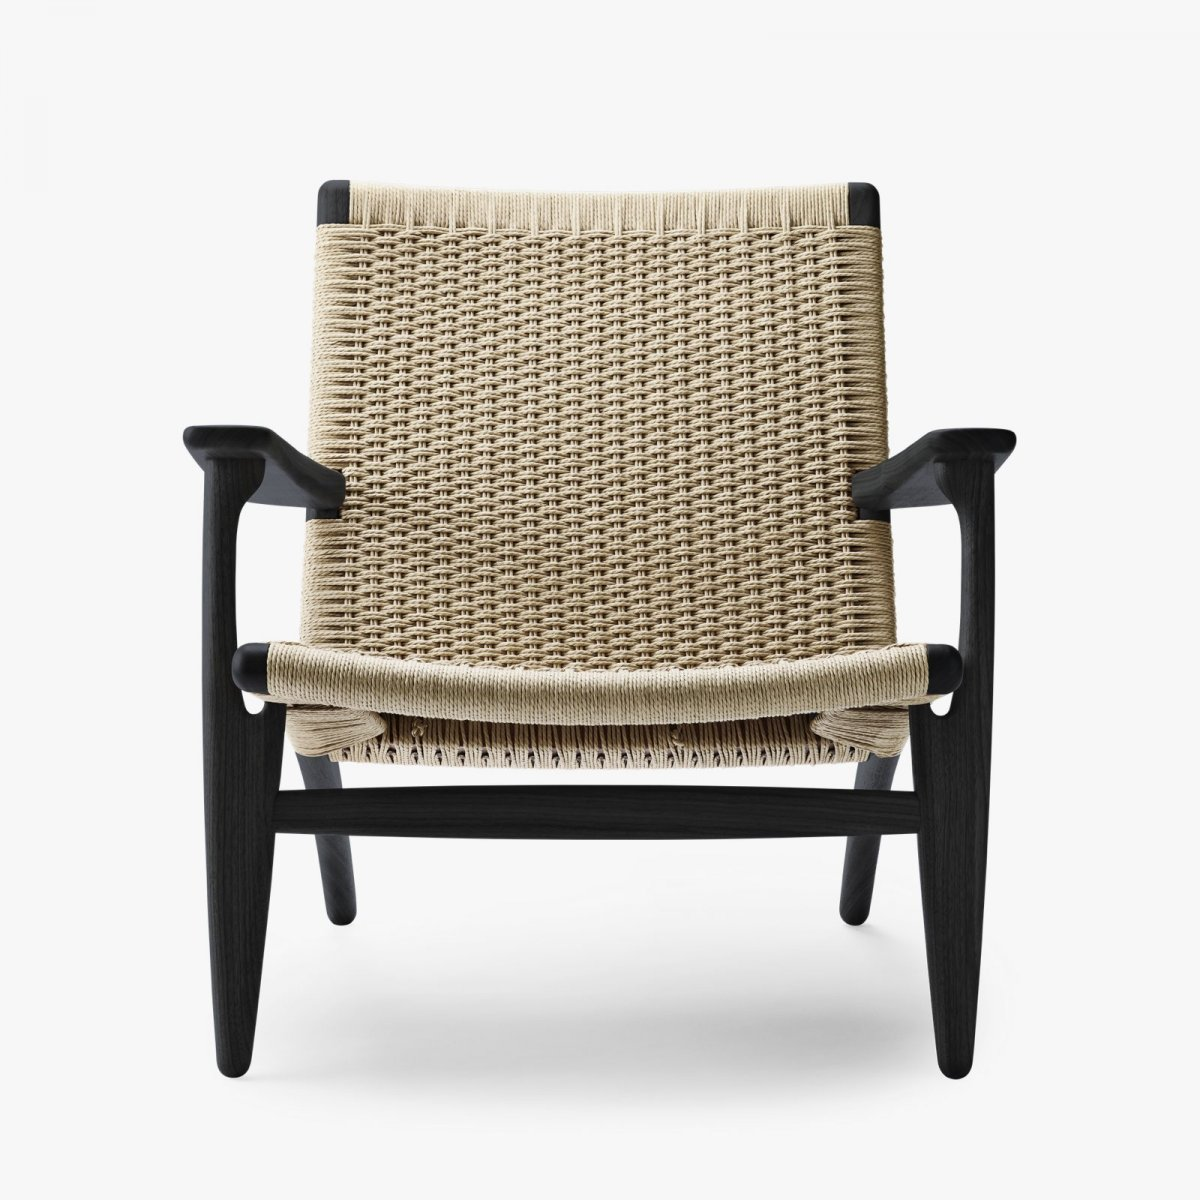 CH25 Lounge Chair, black lacquered oak with natural cord.